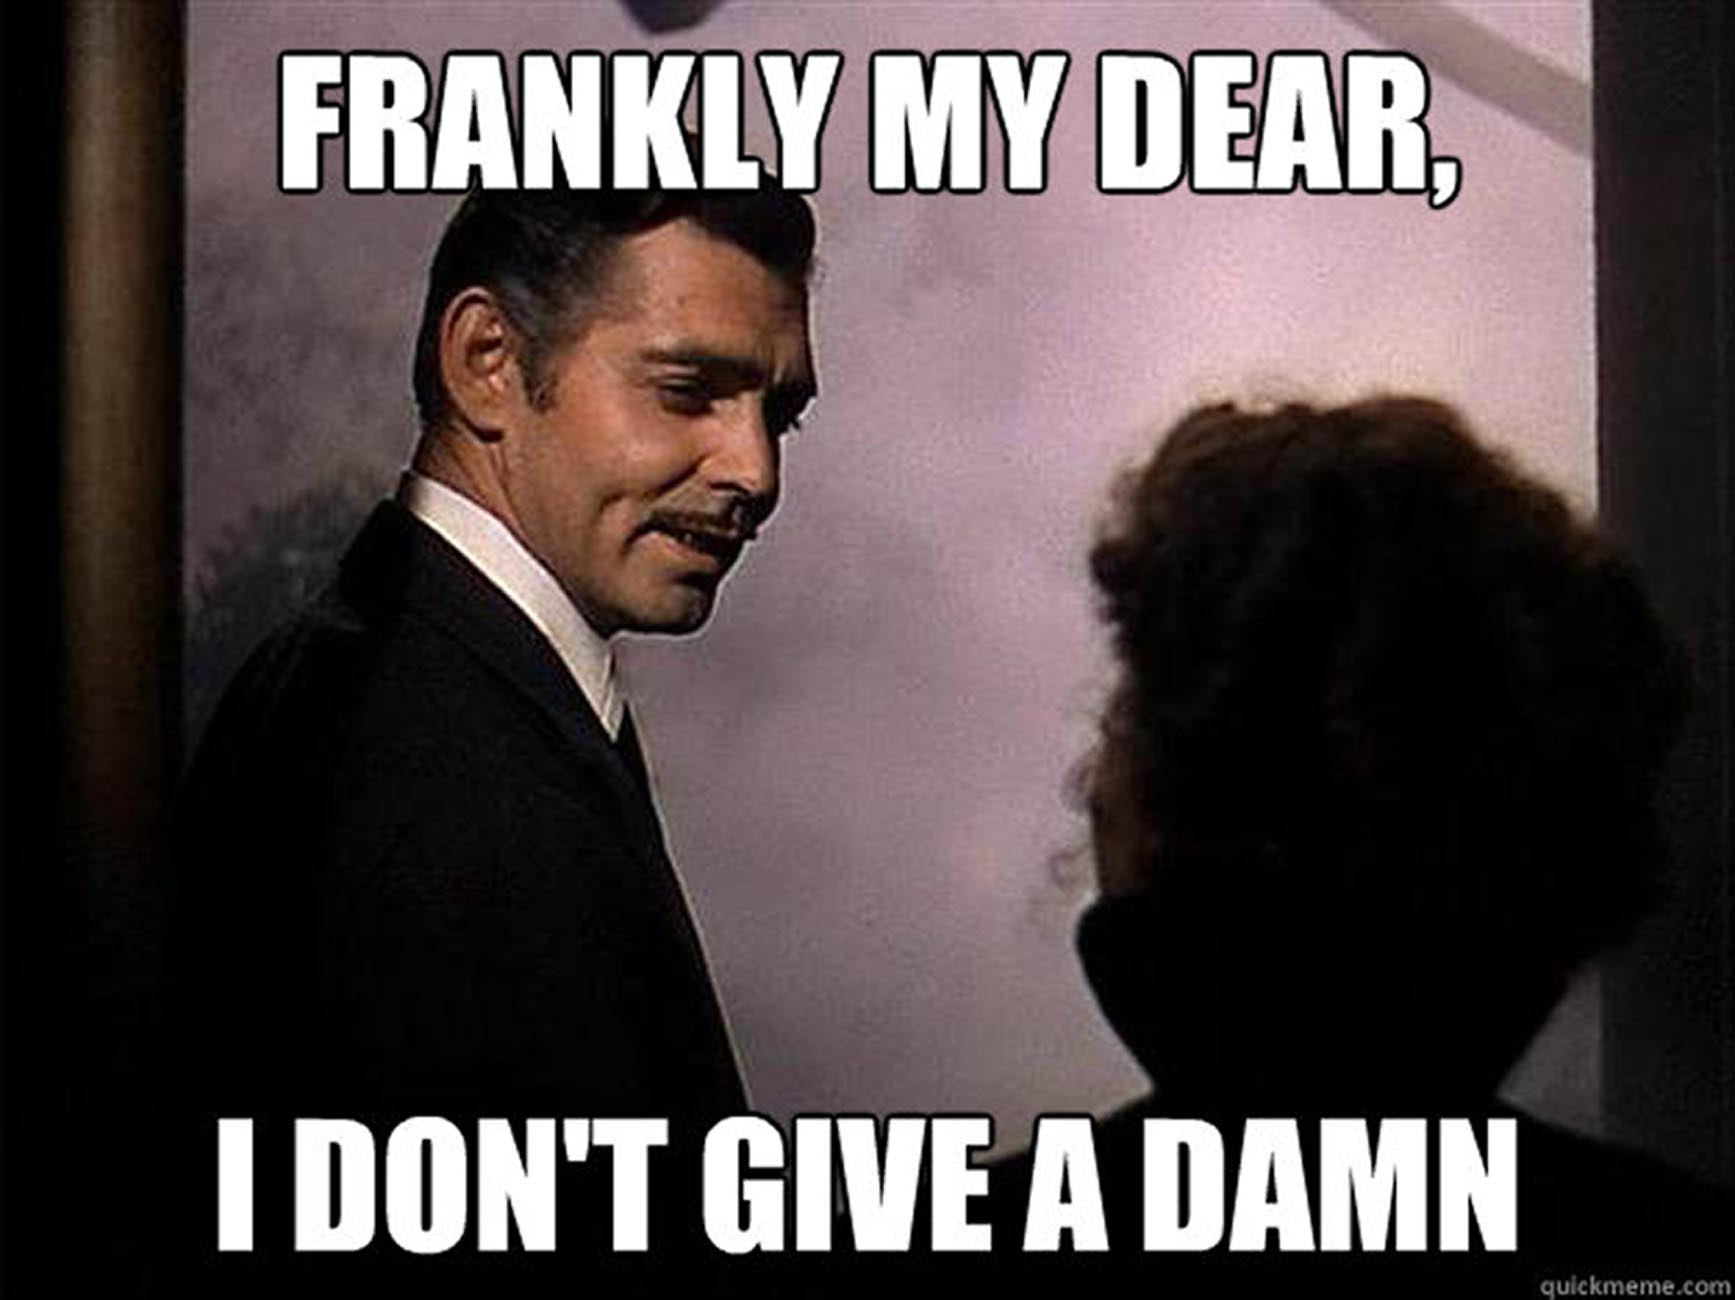 Frankly me dear, I don't give a damn